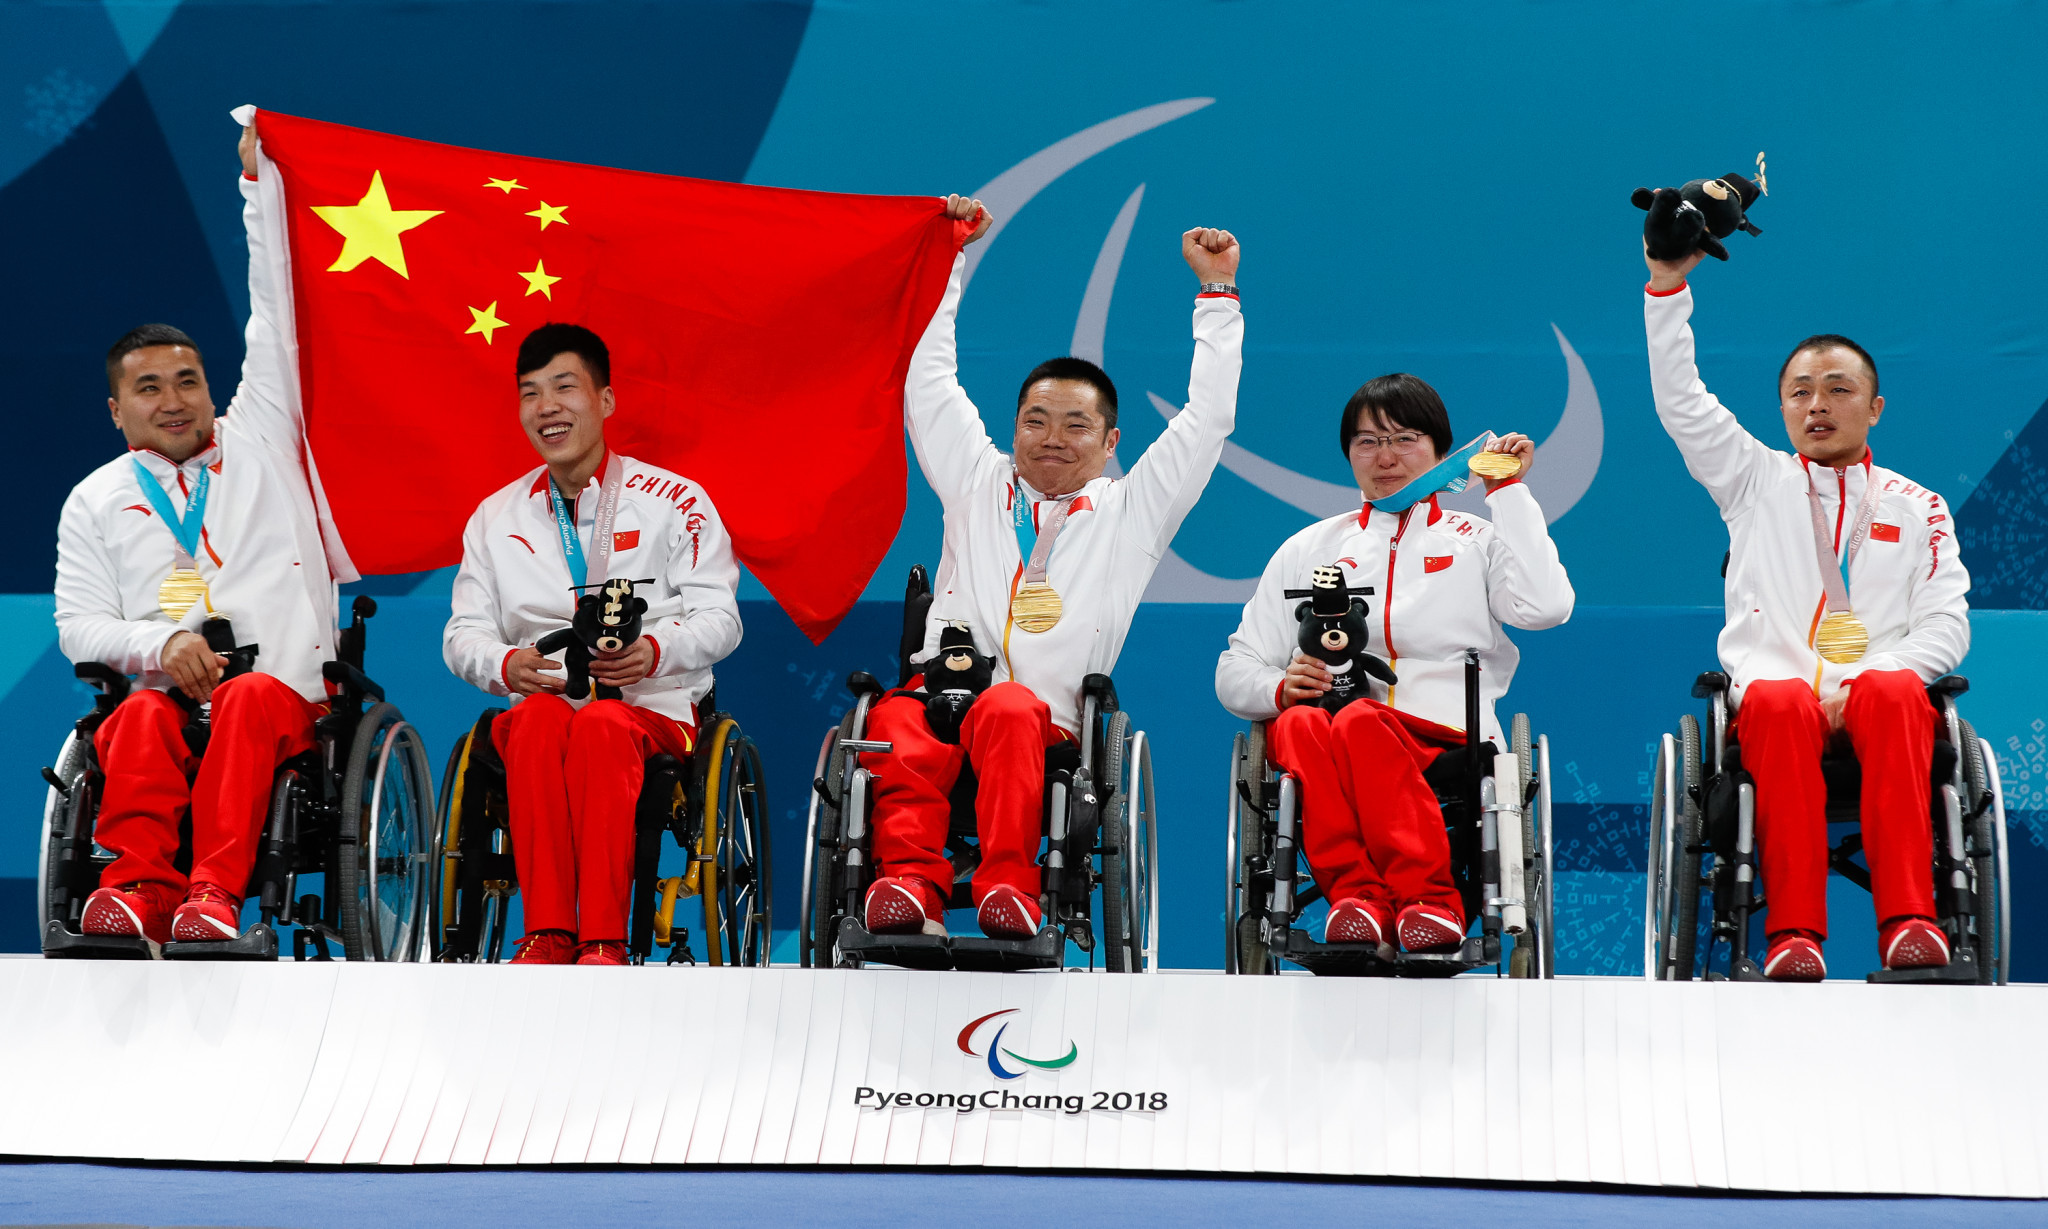 China's wheelchair curling team celebrate their Paralympic Games gold medal at Pyeongchang 2018 ©Getty Images